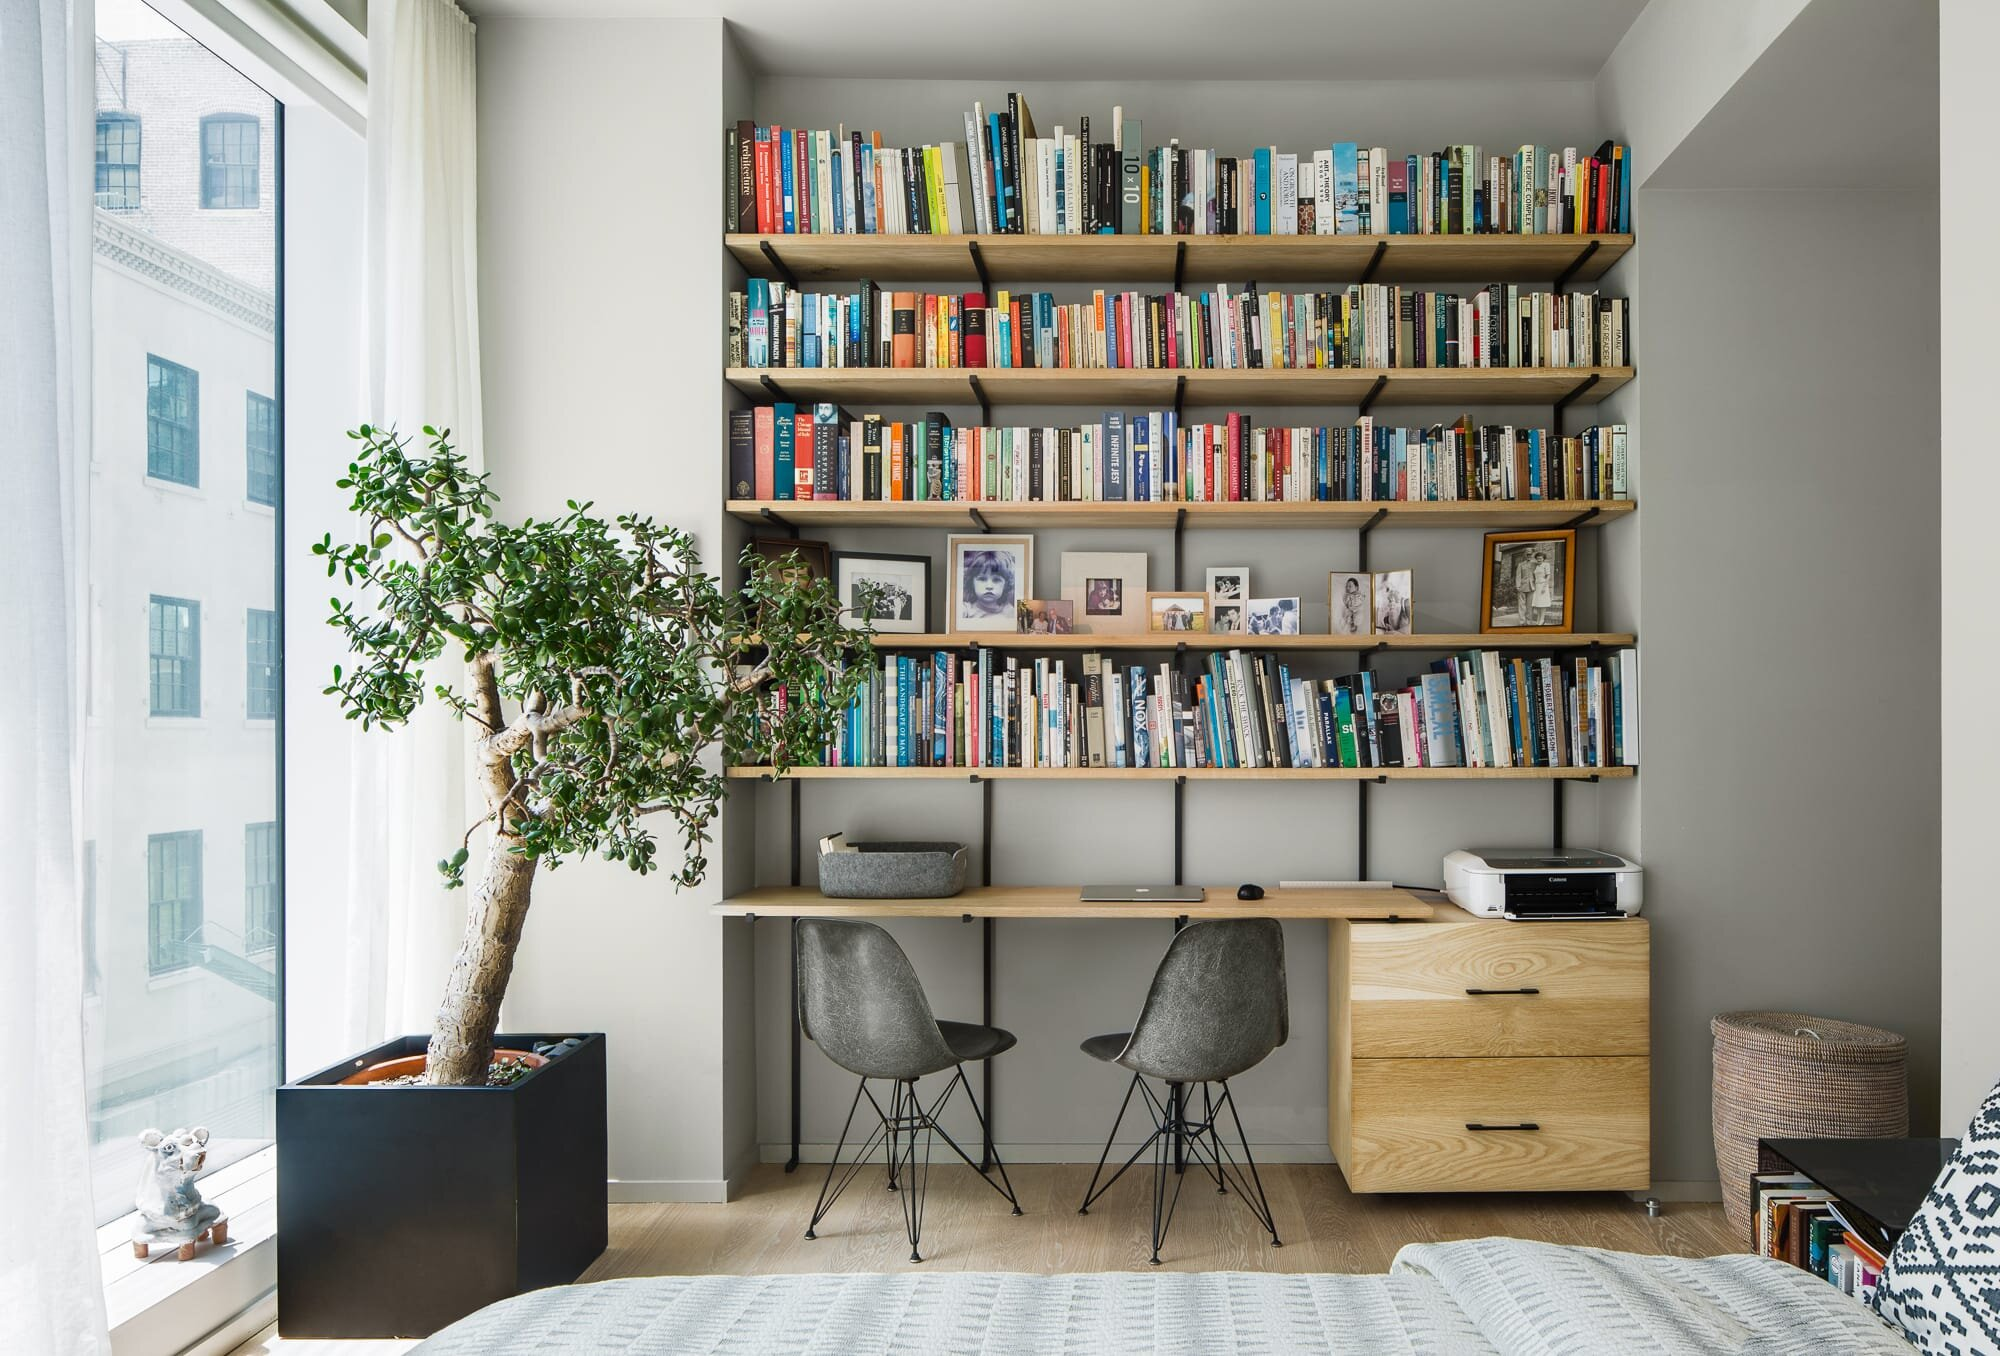 Office space in the bedroom designed by Alloy Development